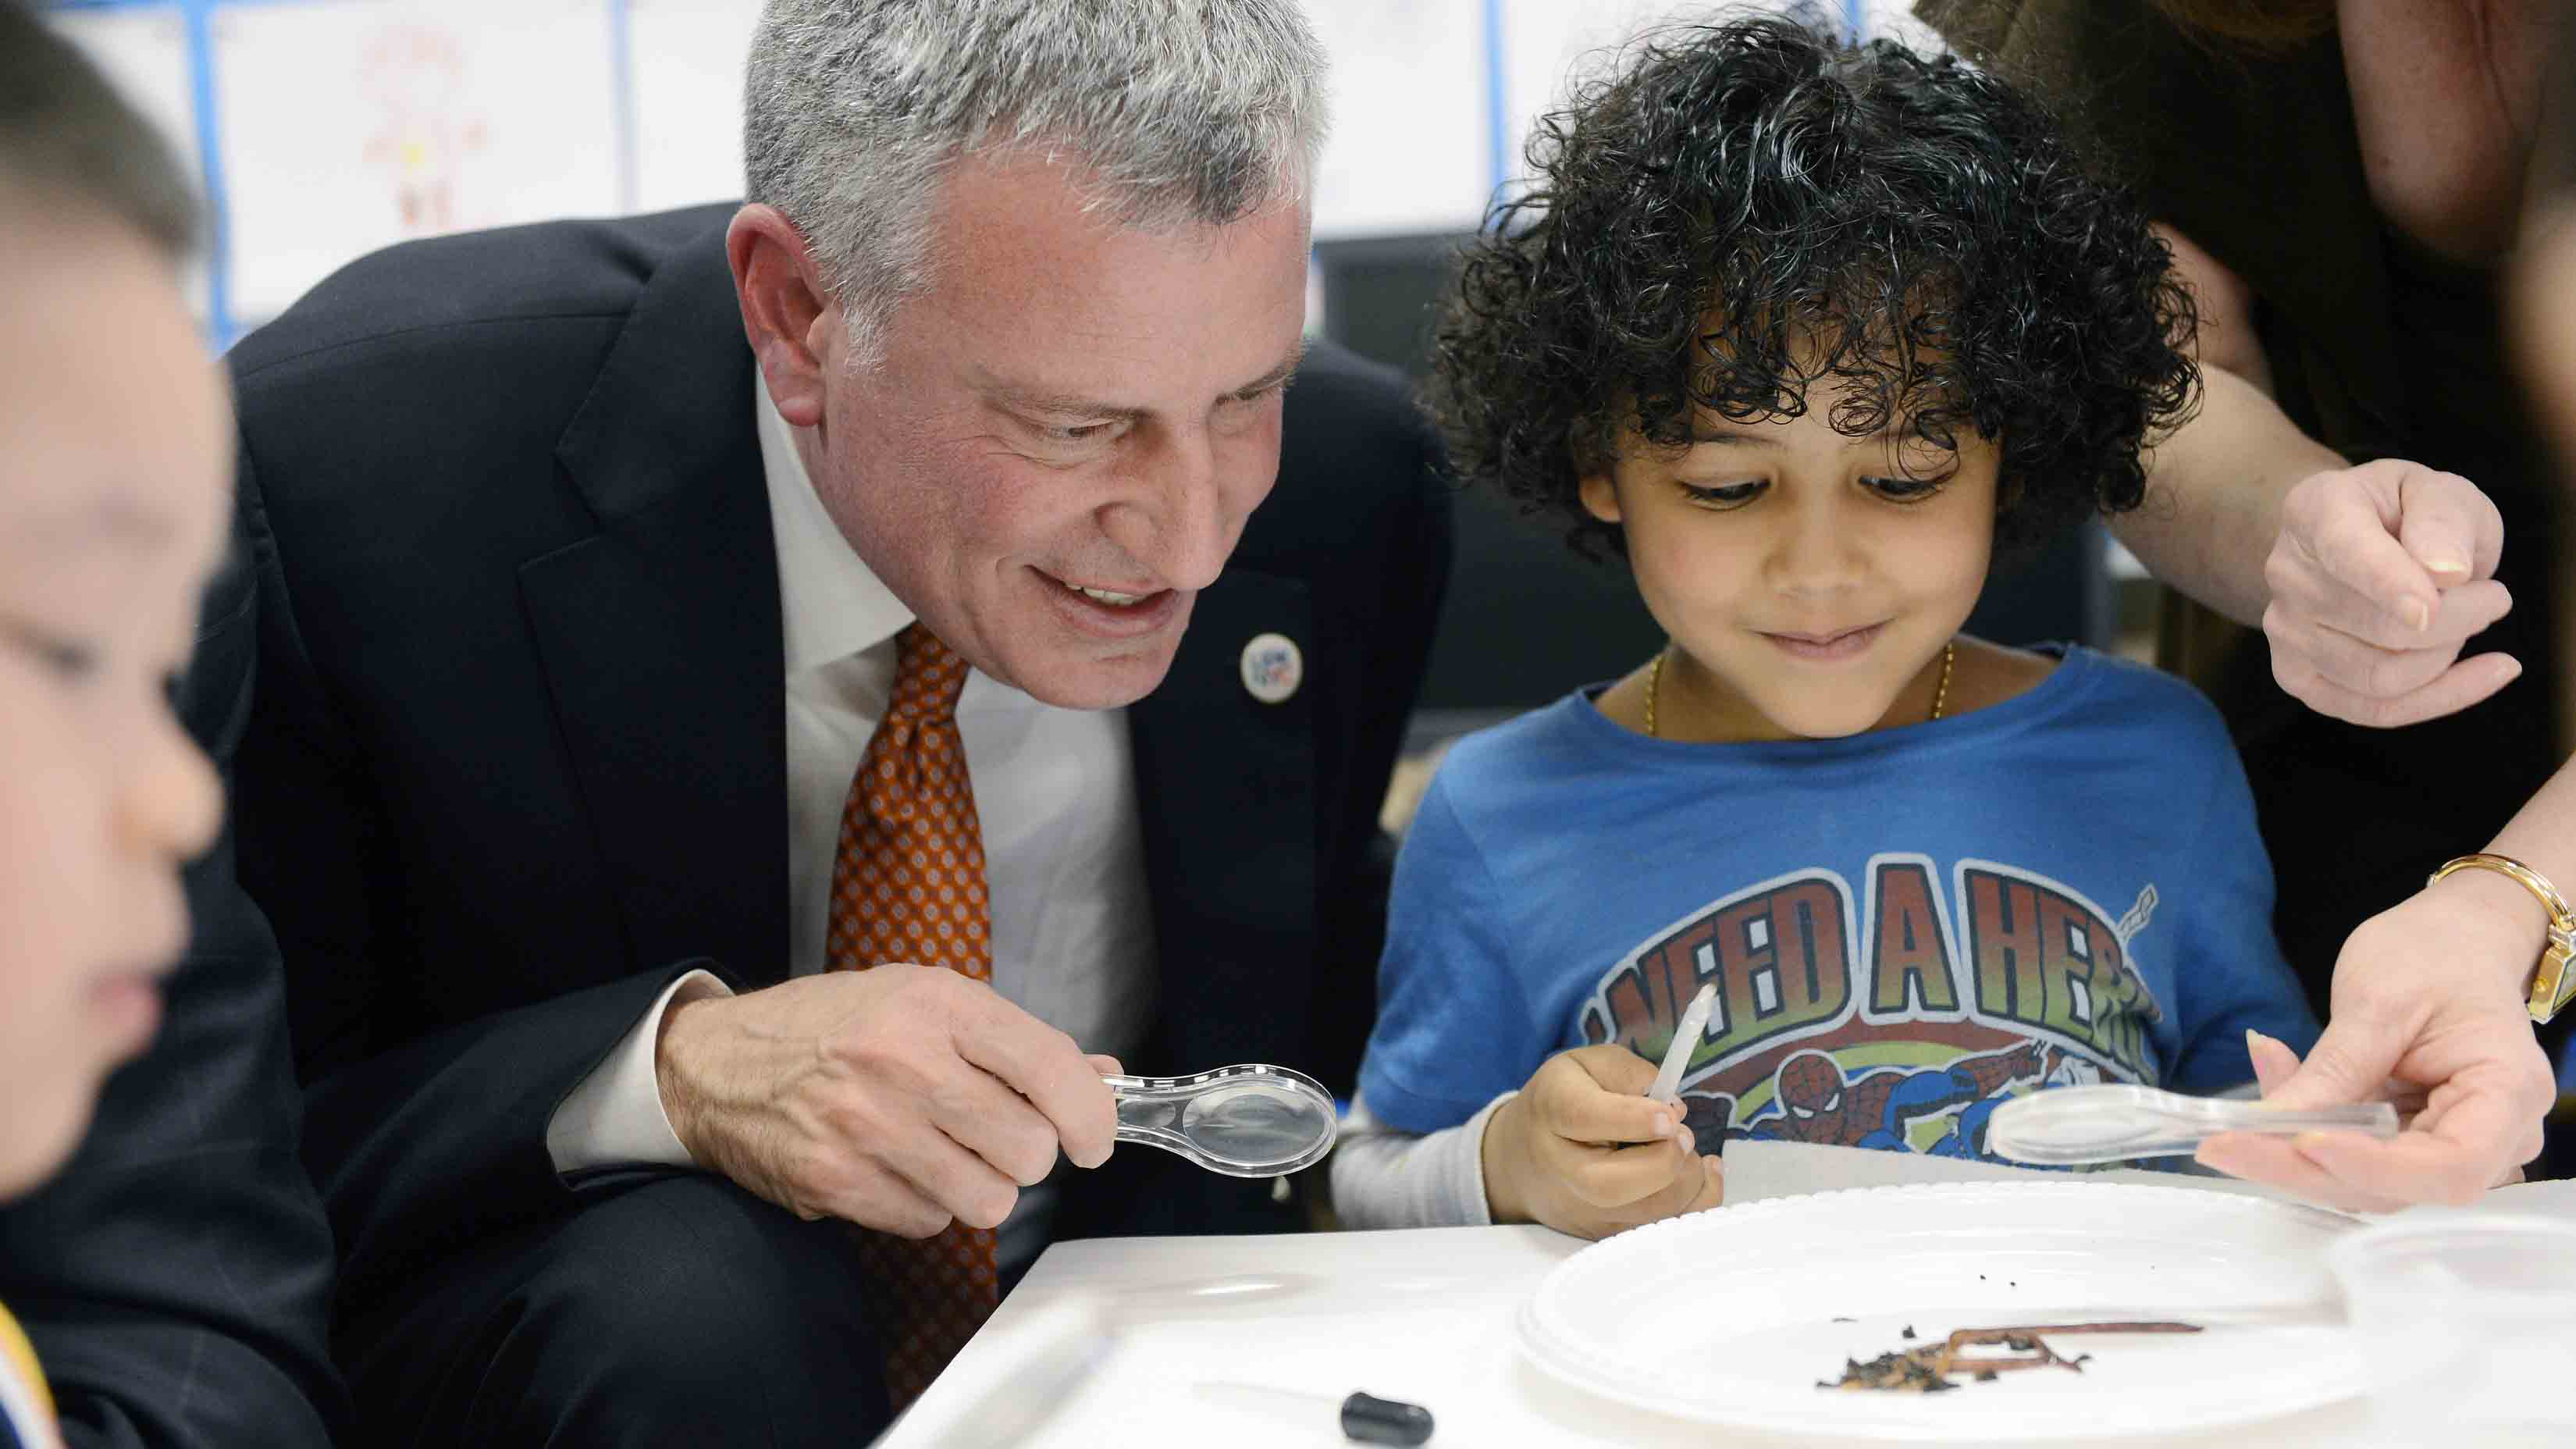 New York City Mayor Bill de Blasio and student Justin De La Cruz work on a science project with worms